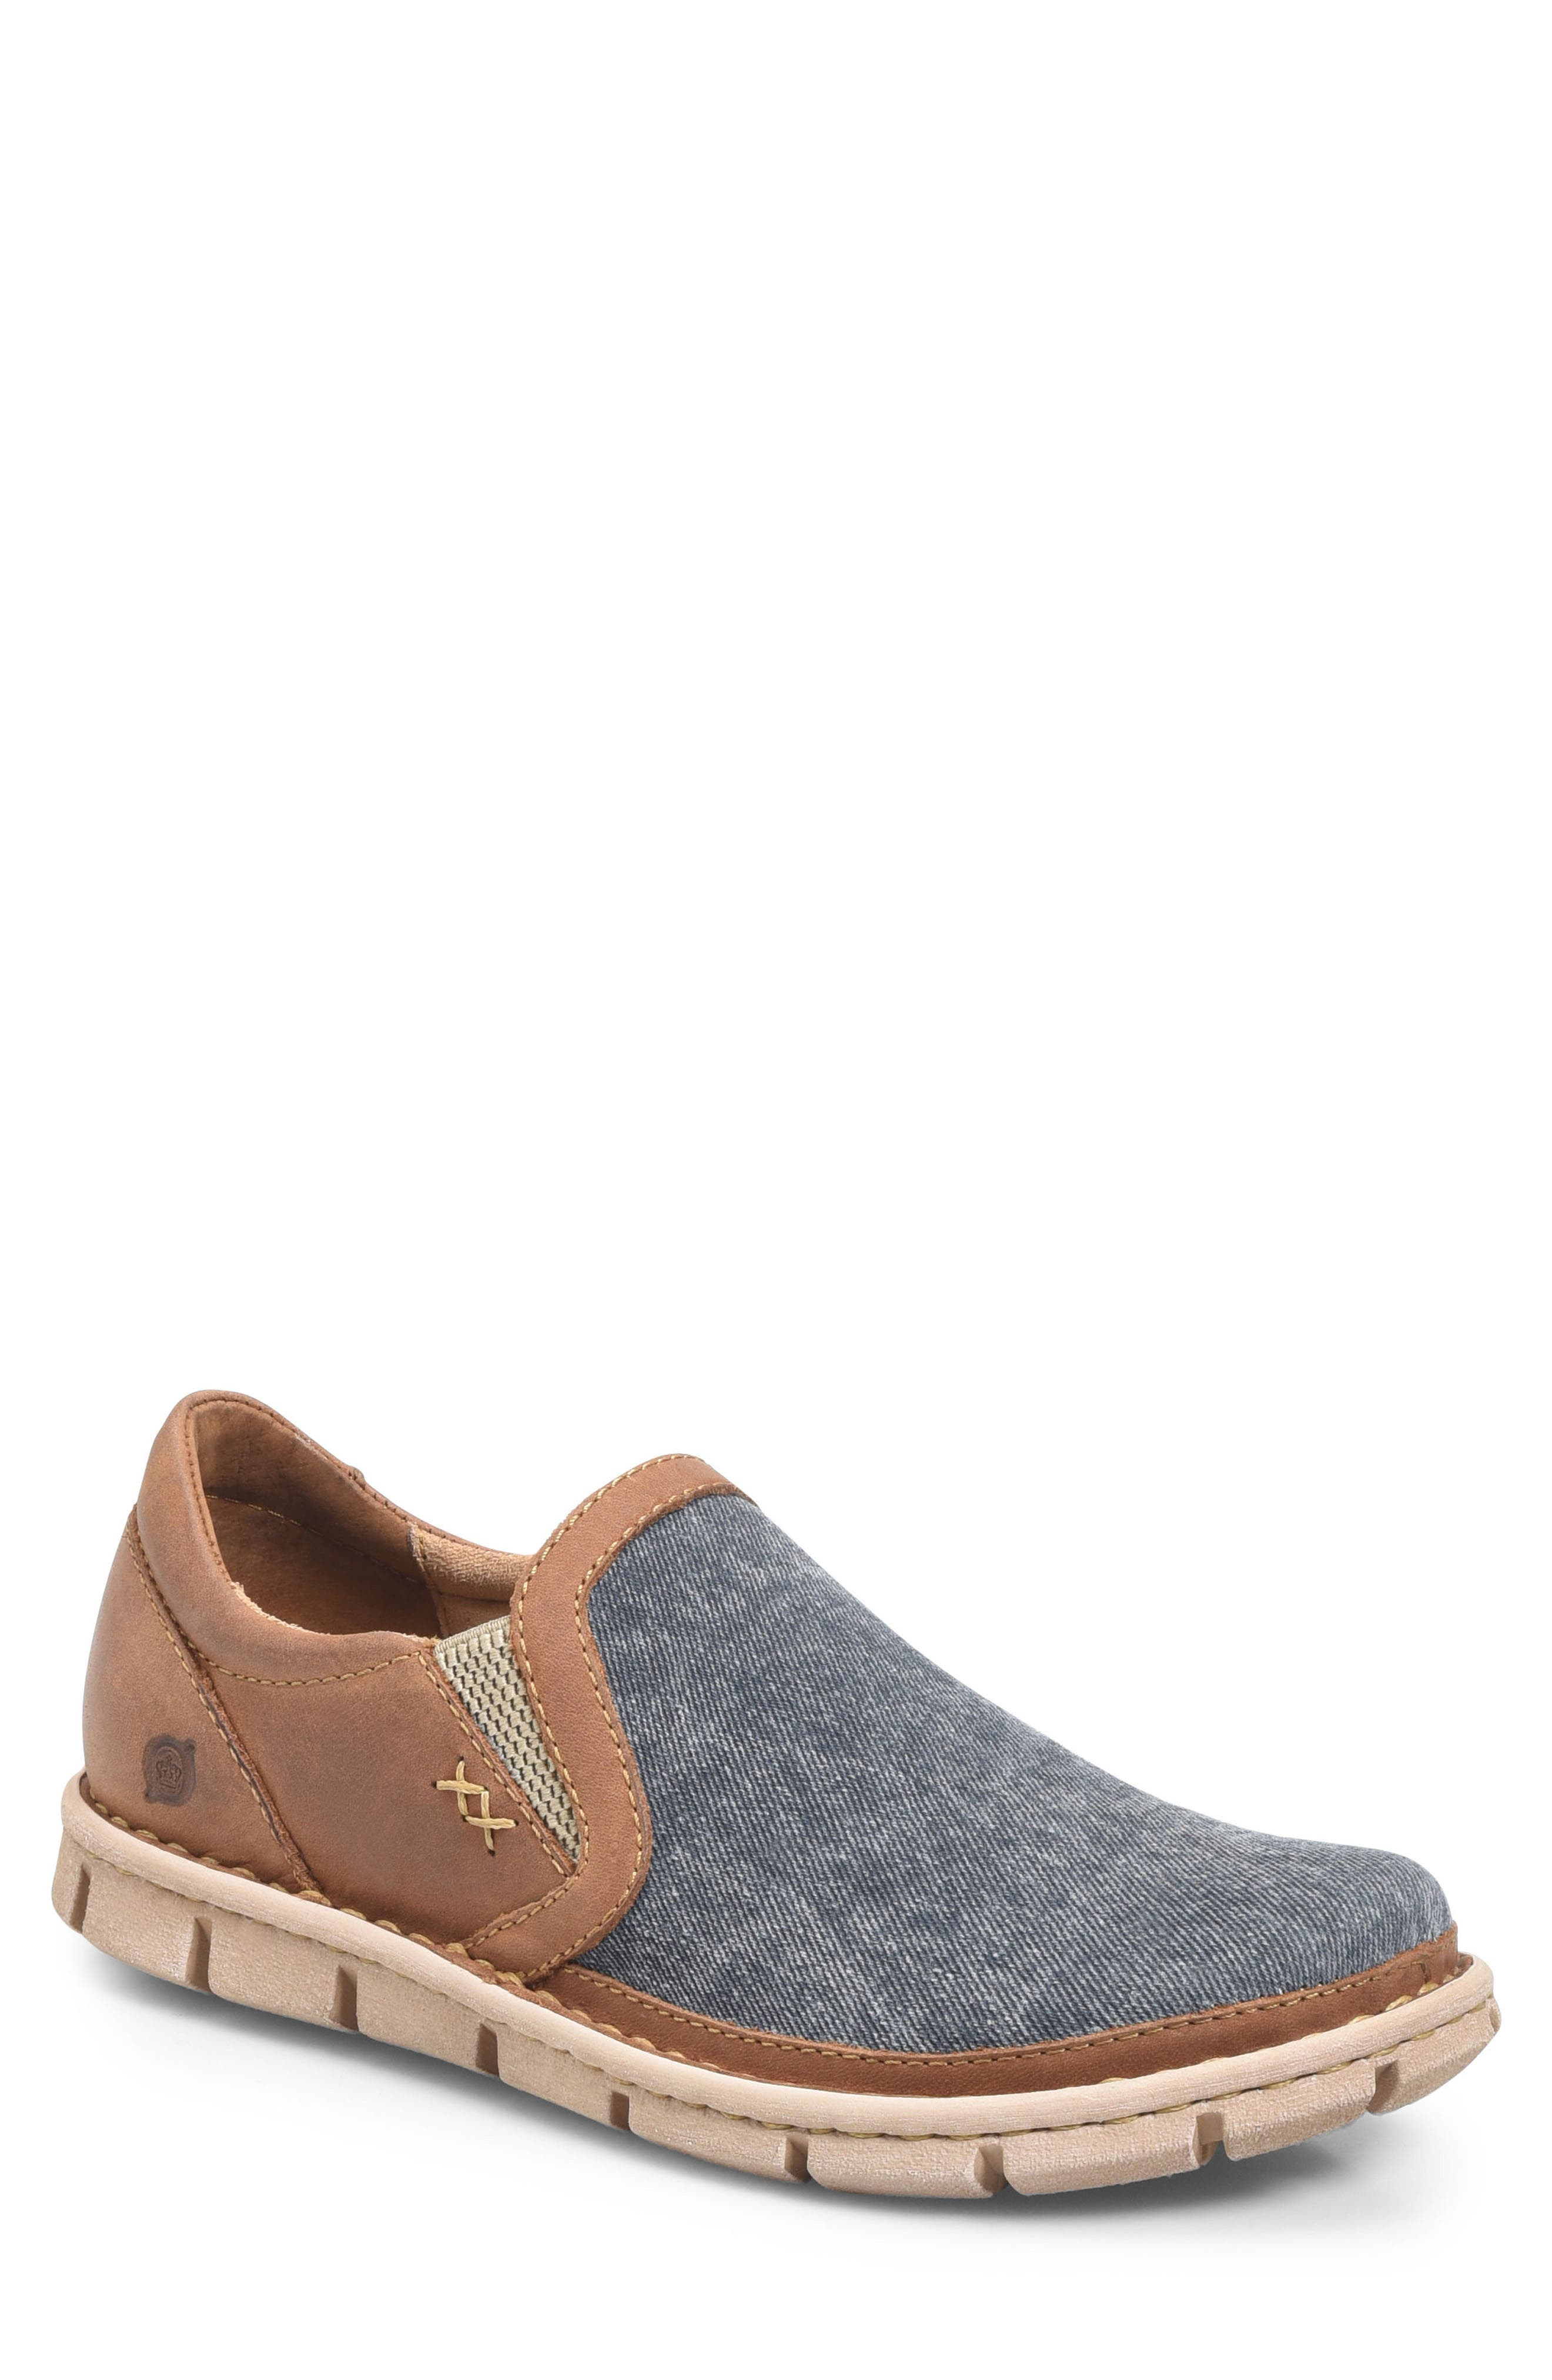 'Sawyer' Leather Slip-On,                             Main thumbnail 1, color,                             Navy/ Light Brown Canvas